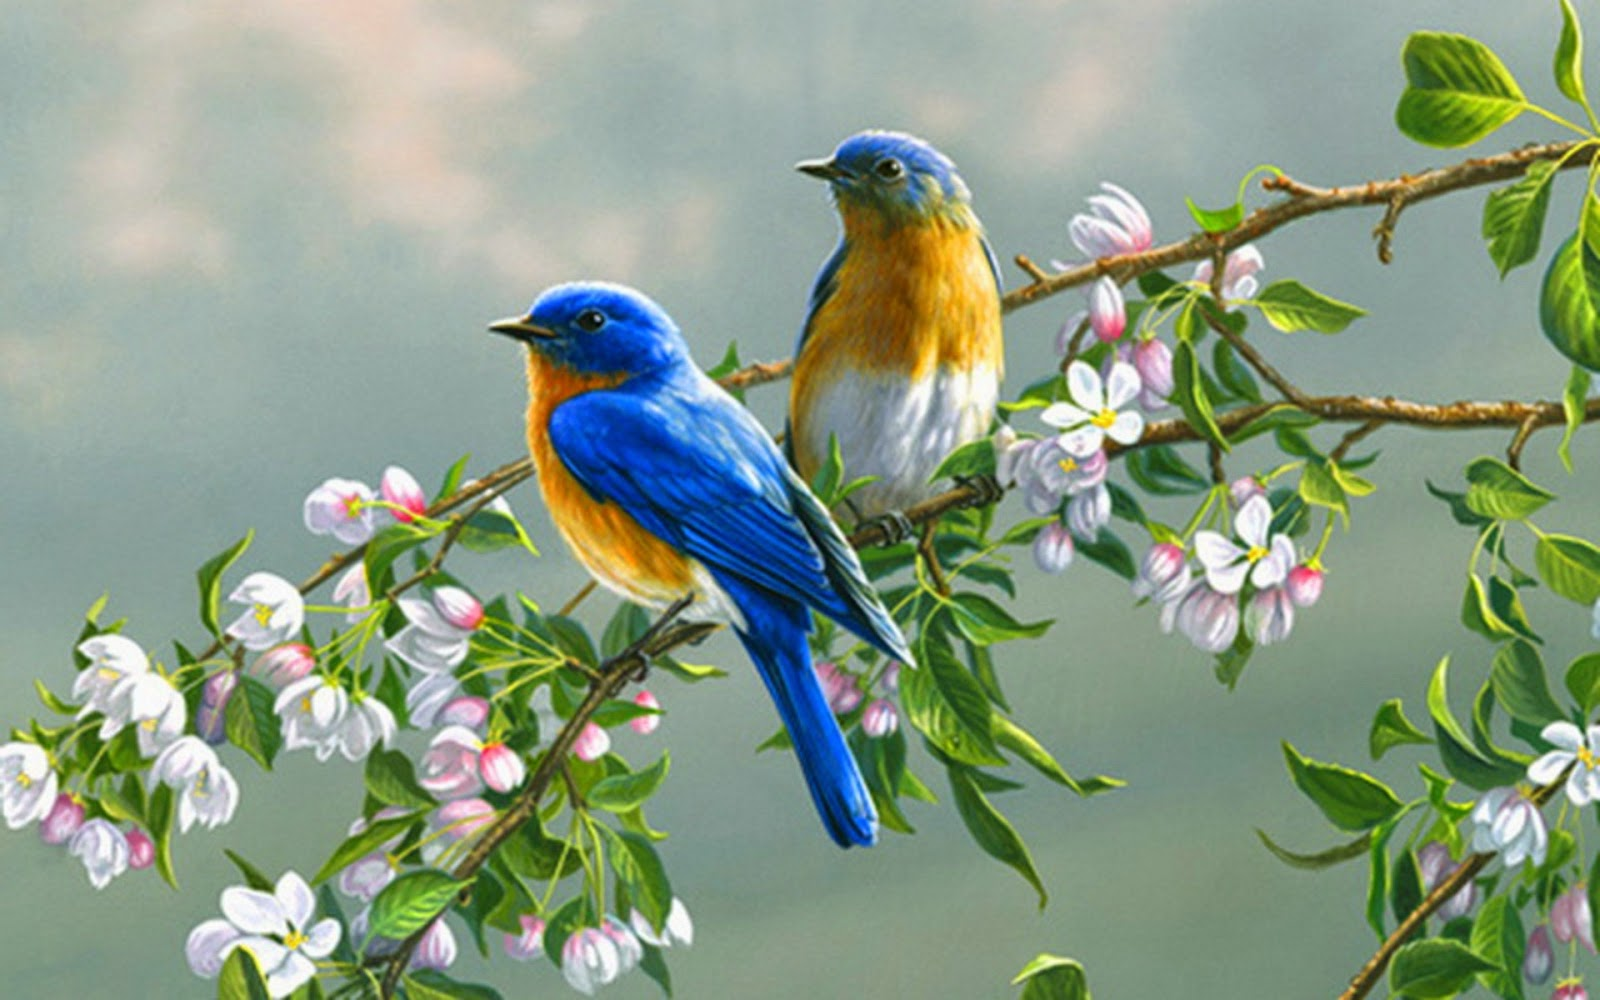 hd birds wallpapers for desktop get for free get for free